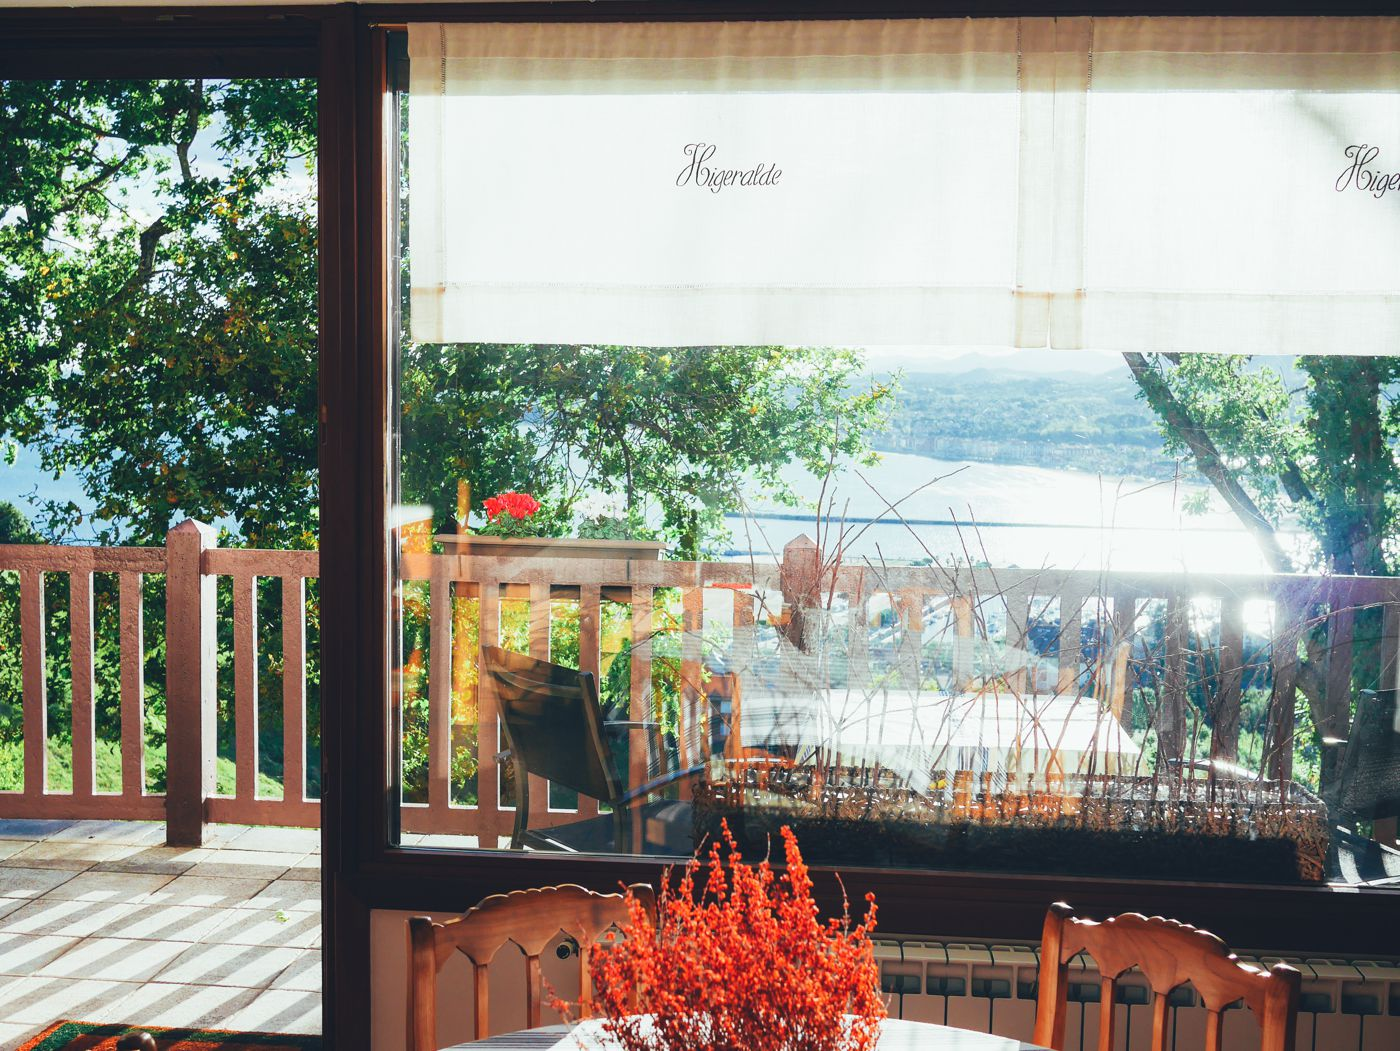 Hotel Higeralde, Gipuzkoa, Basque Country, Travel, Bed and Breakfast, Accomodation (30)